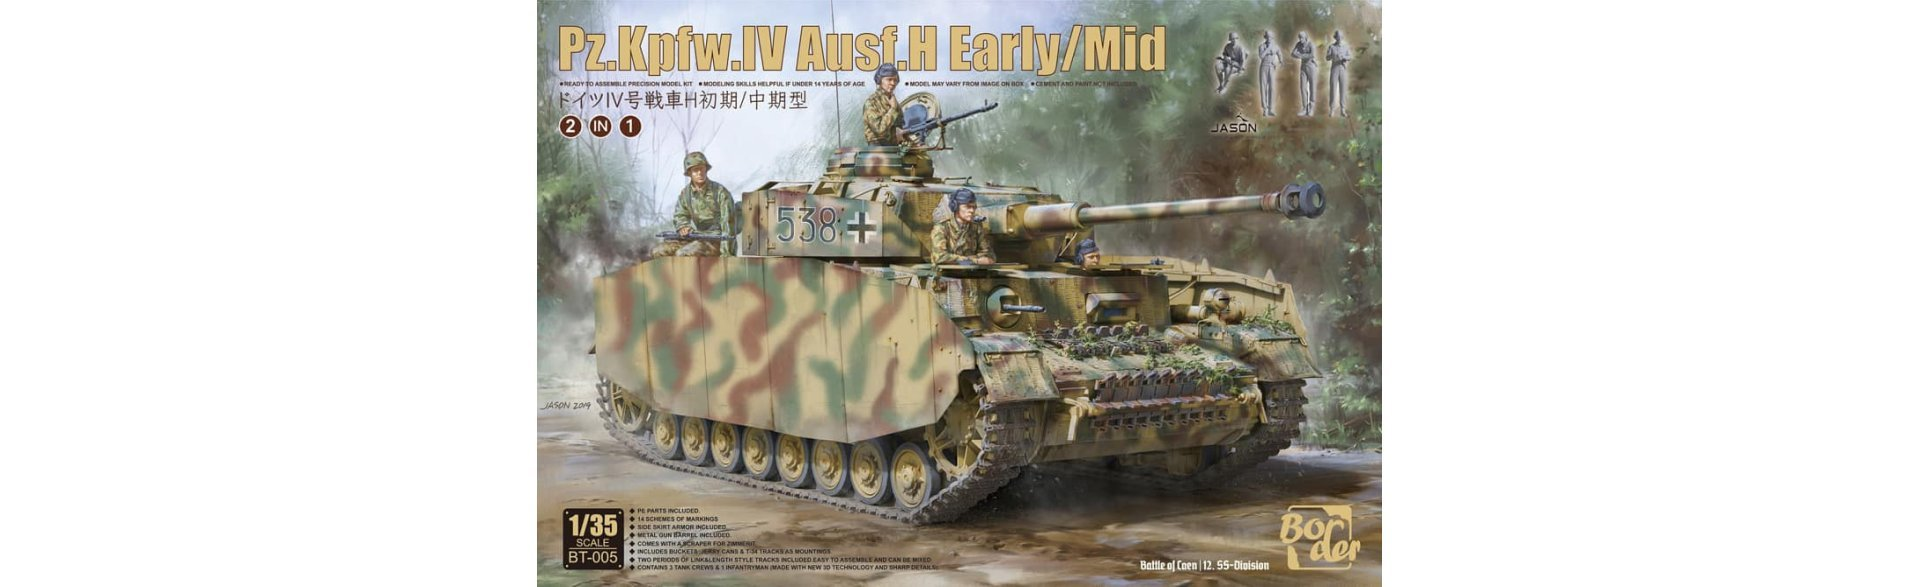 Panzer IV Ausf.H Early/ Mid With Figures, 1/35